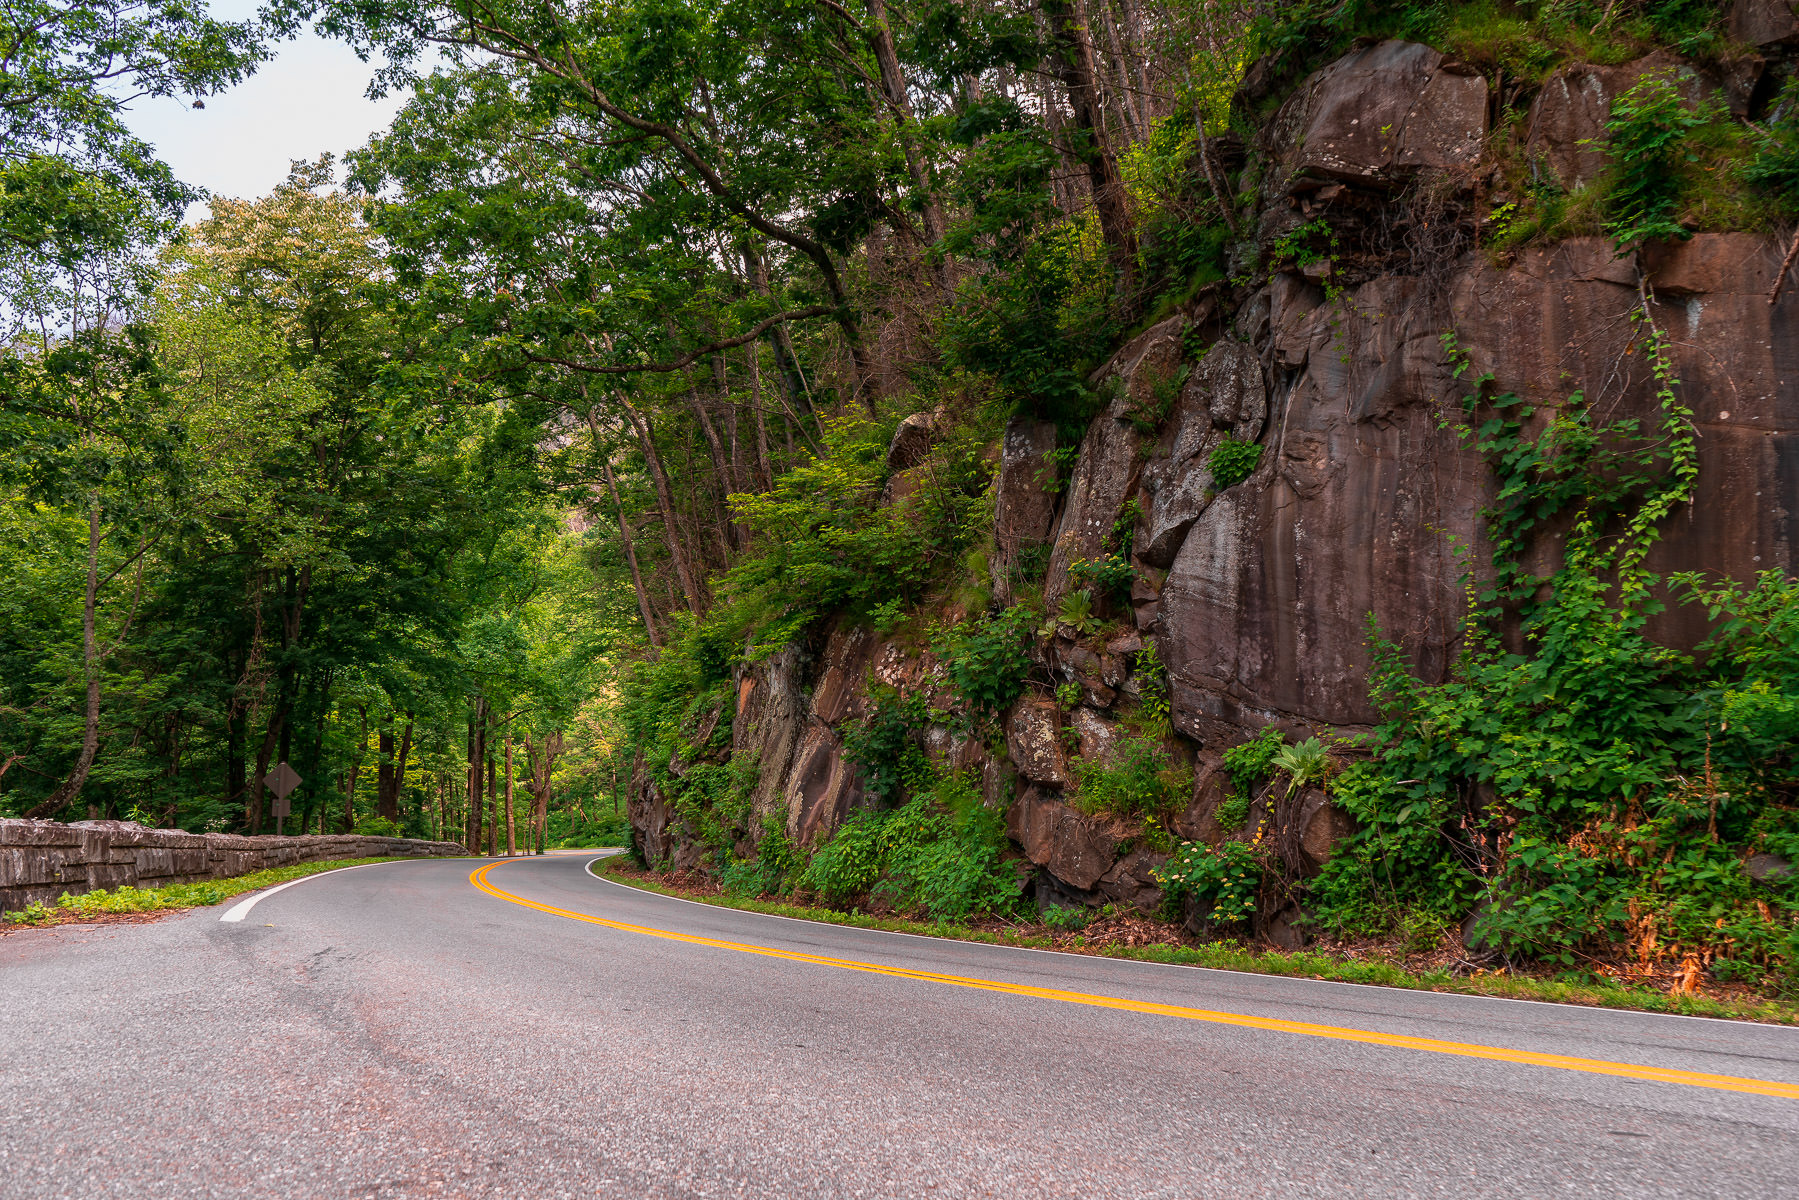 A road curves around a mountainside in Tennessee's Great Smoky Mountains National Park.